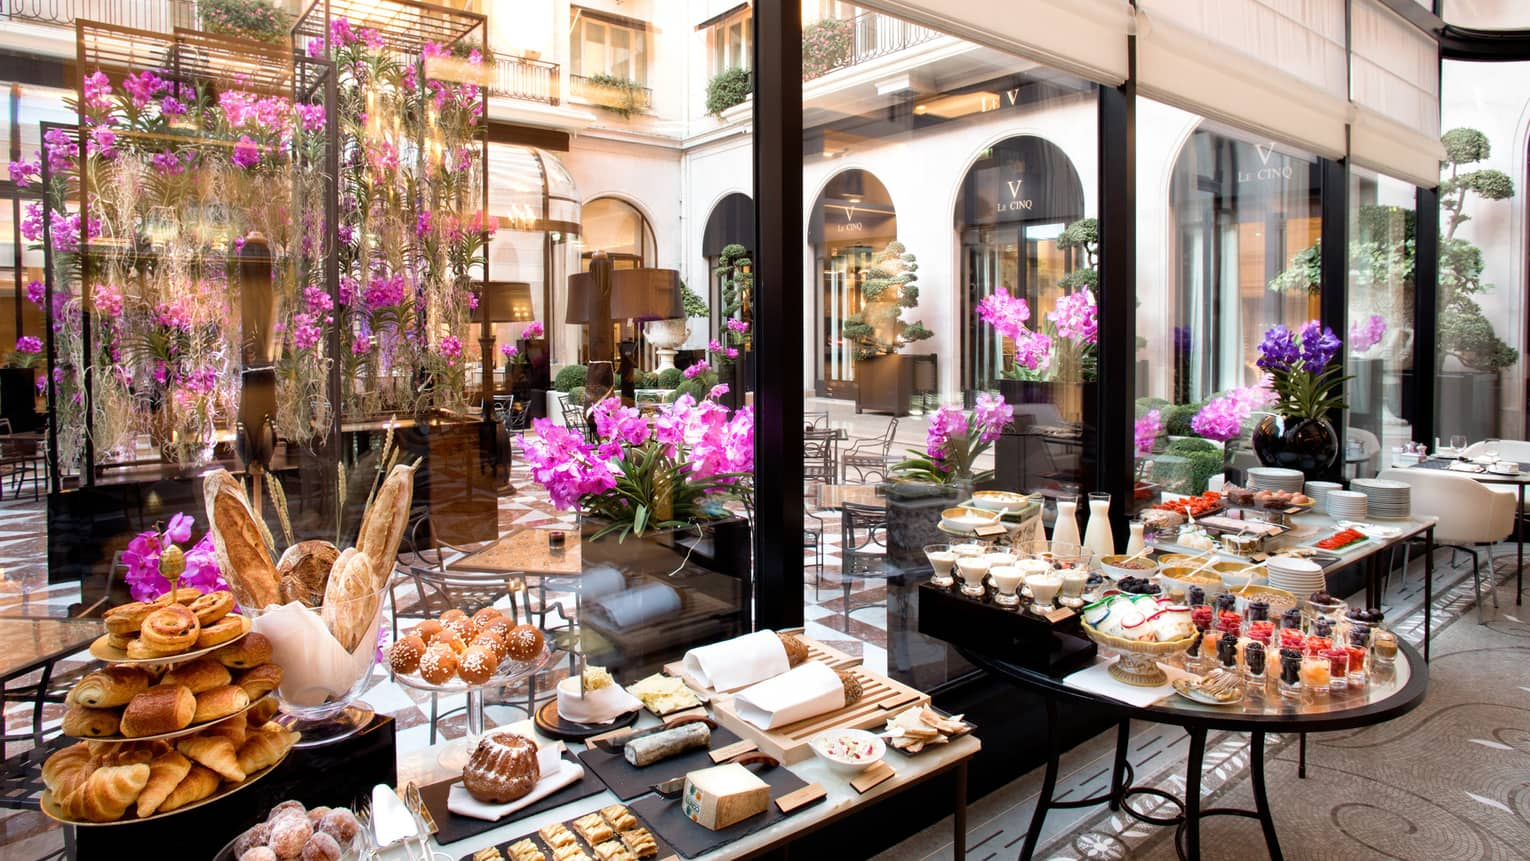 Pastries, desserts spread over tables in Parisian bakery, purple flower arrangements